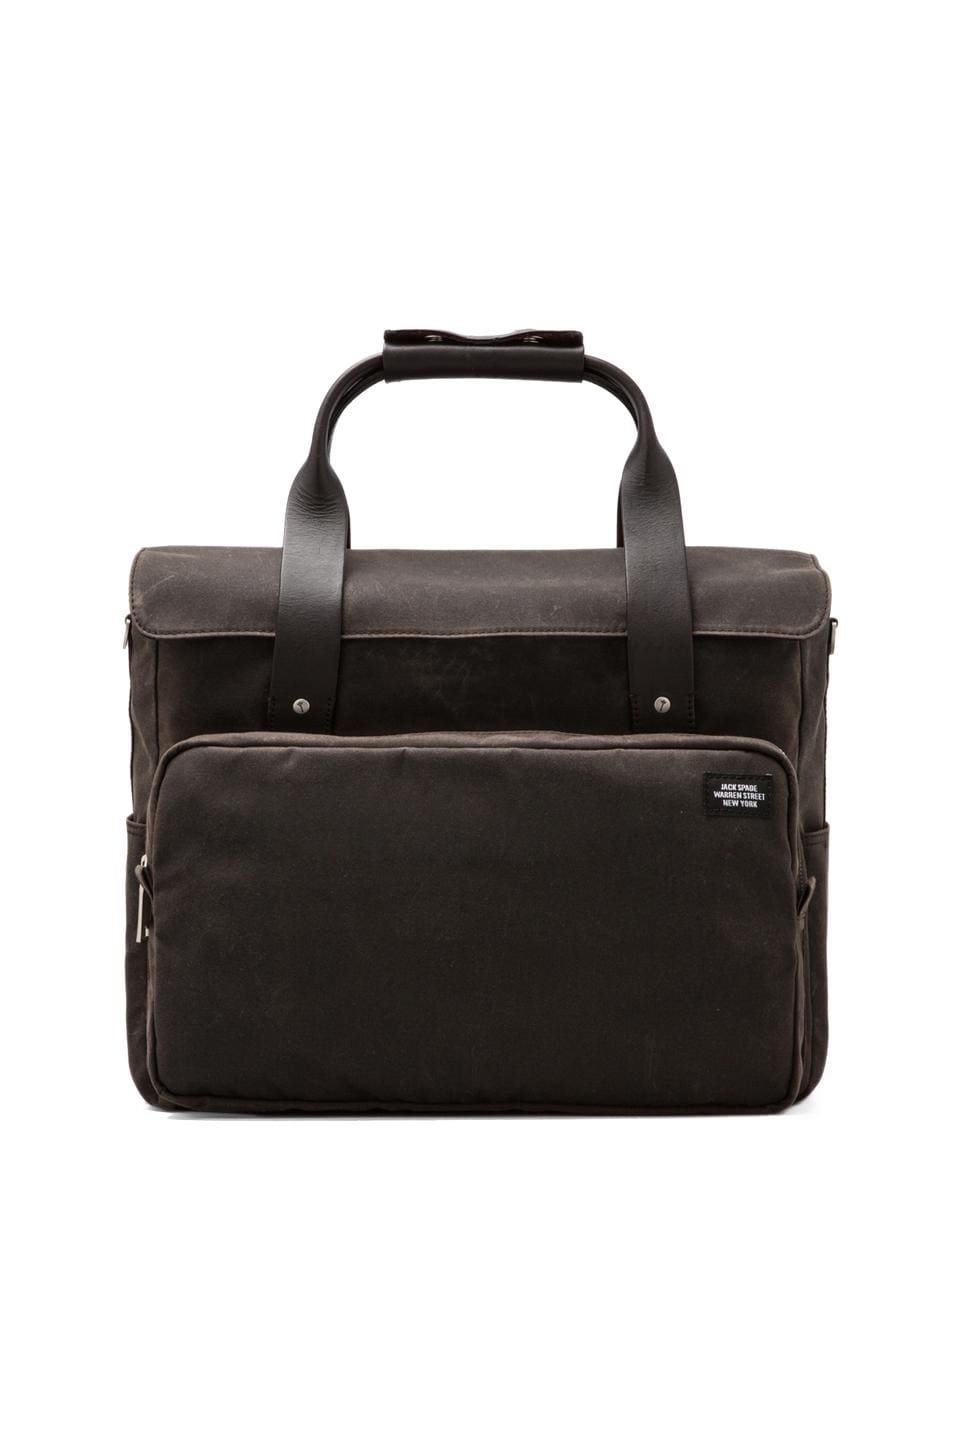 Jack Spade Waxwear Survey Bag in Chocolate/Navy